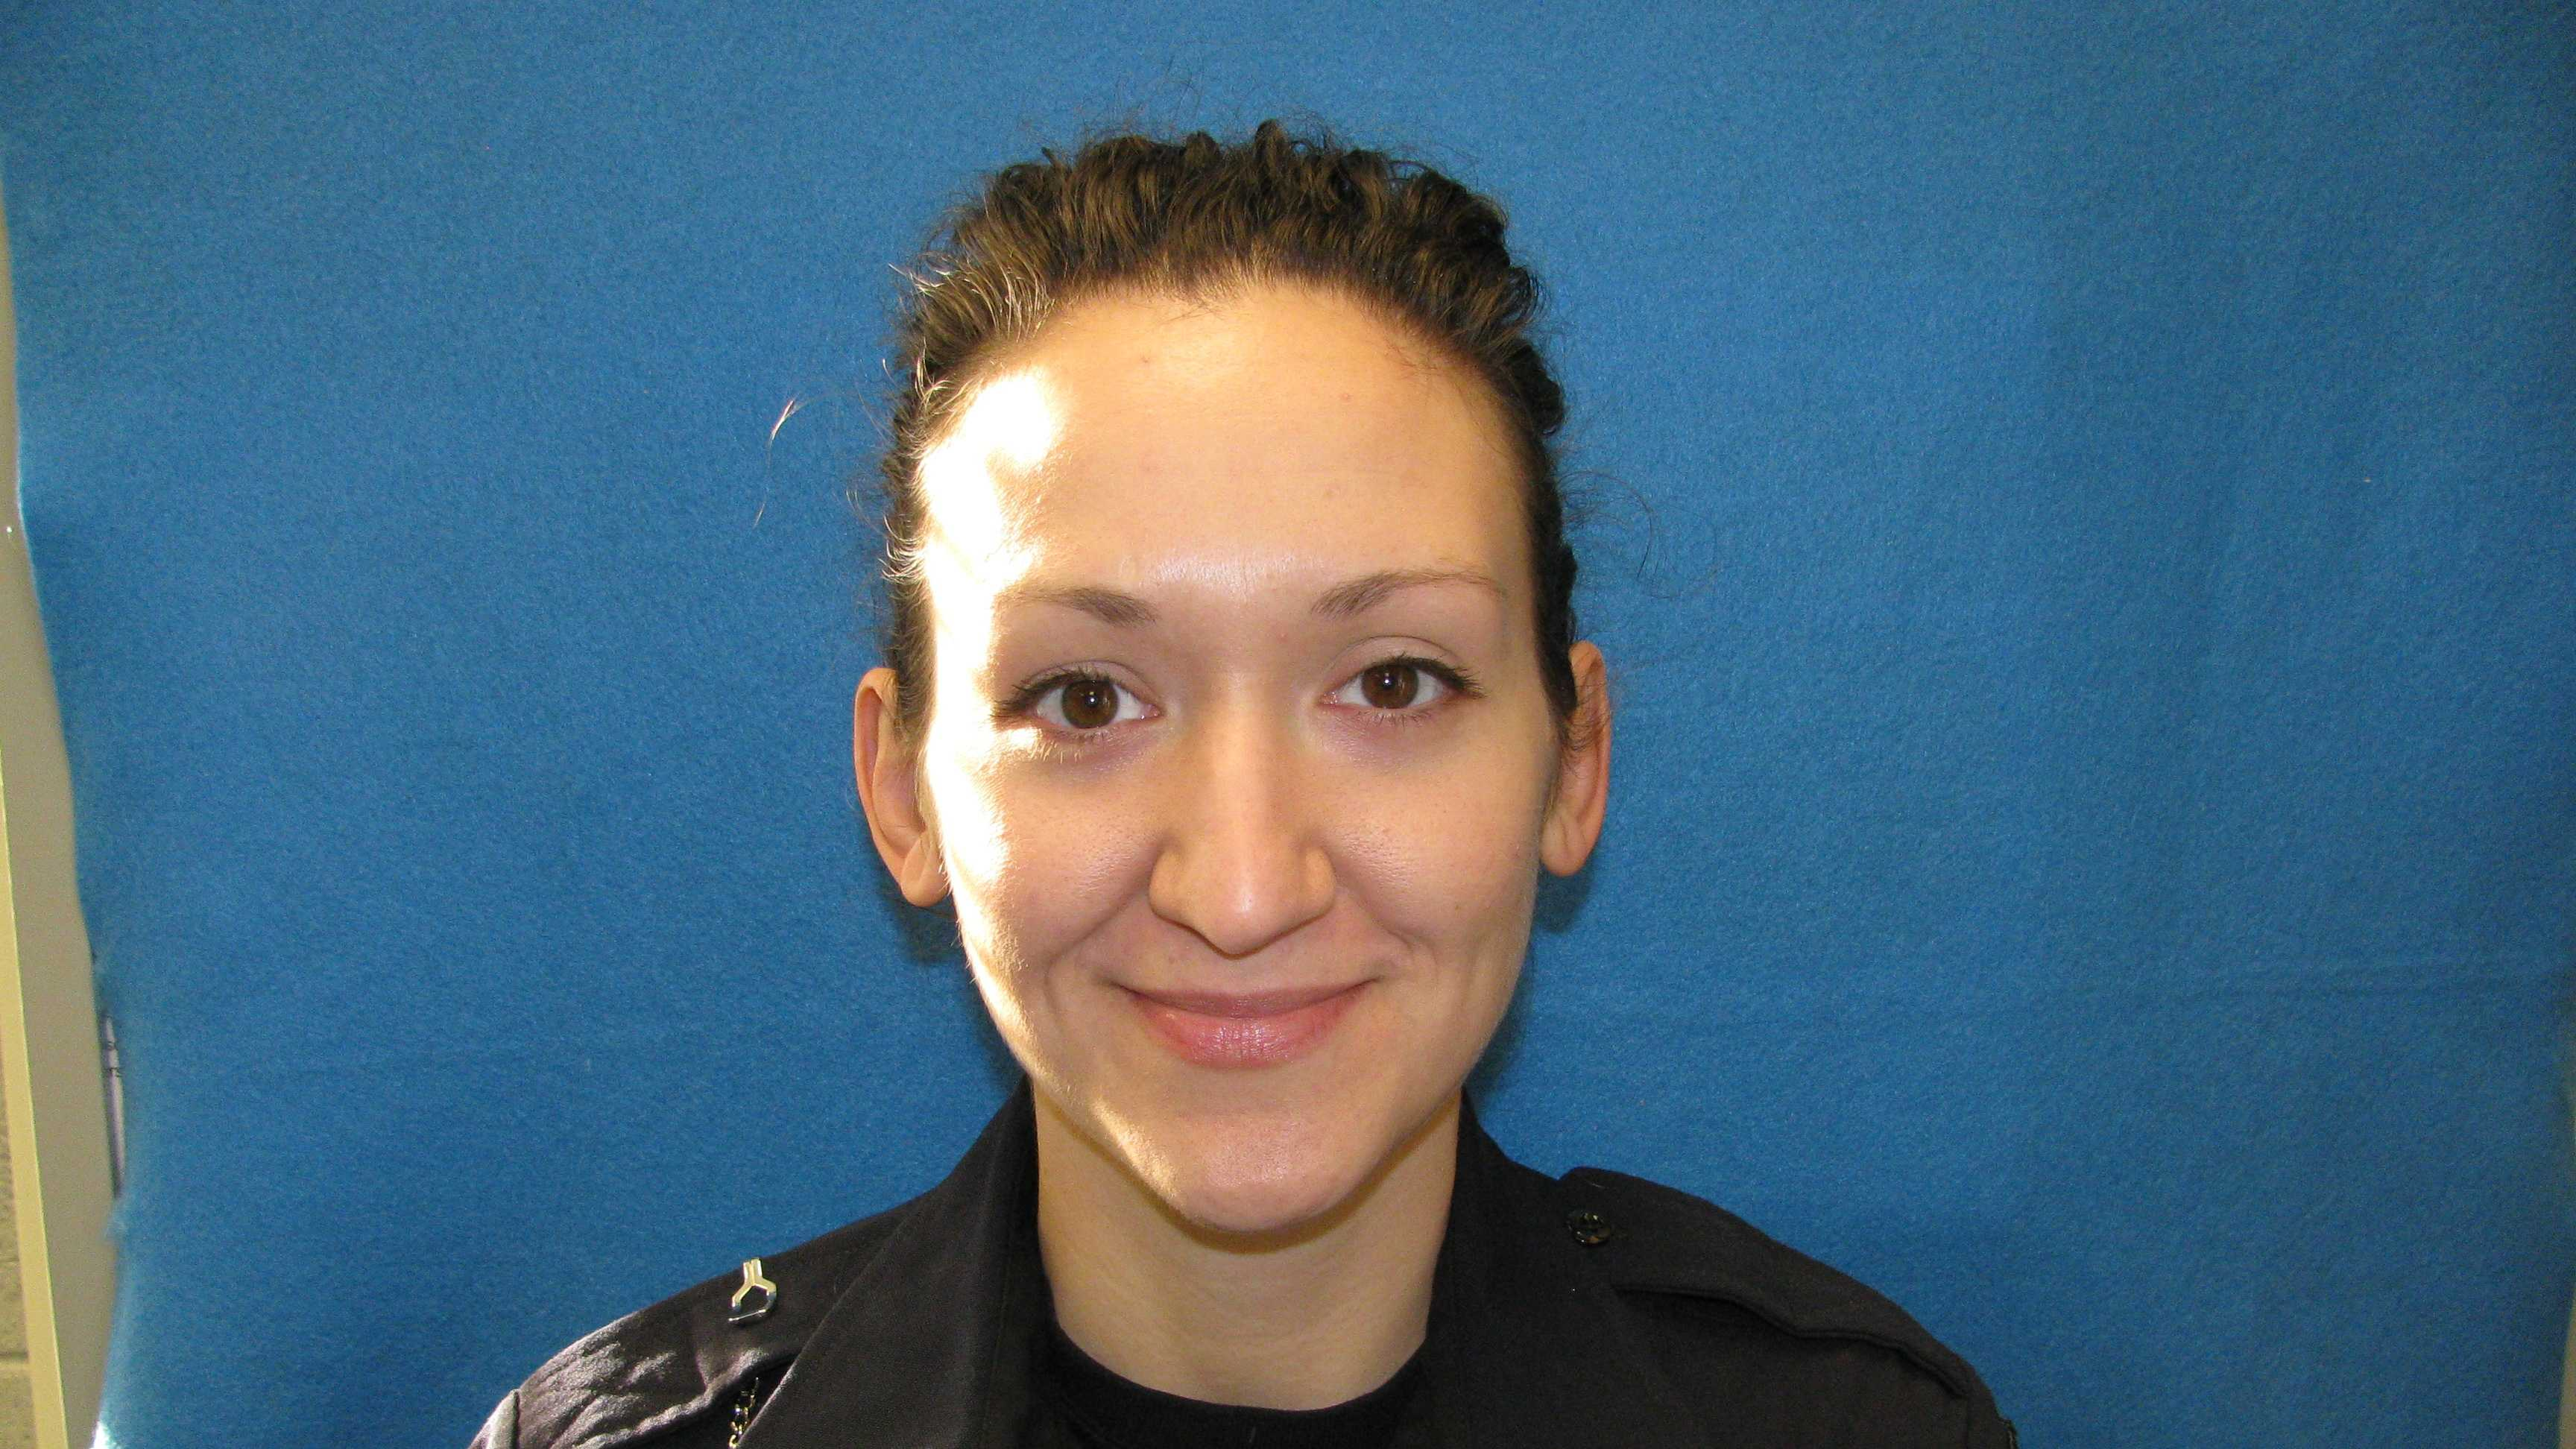 Wauwatosa Police released this photo of Officer Jennifer Sebena, who was found shot to death on December 24, 2012.